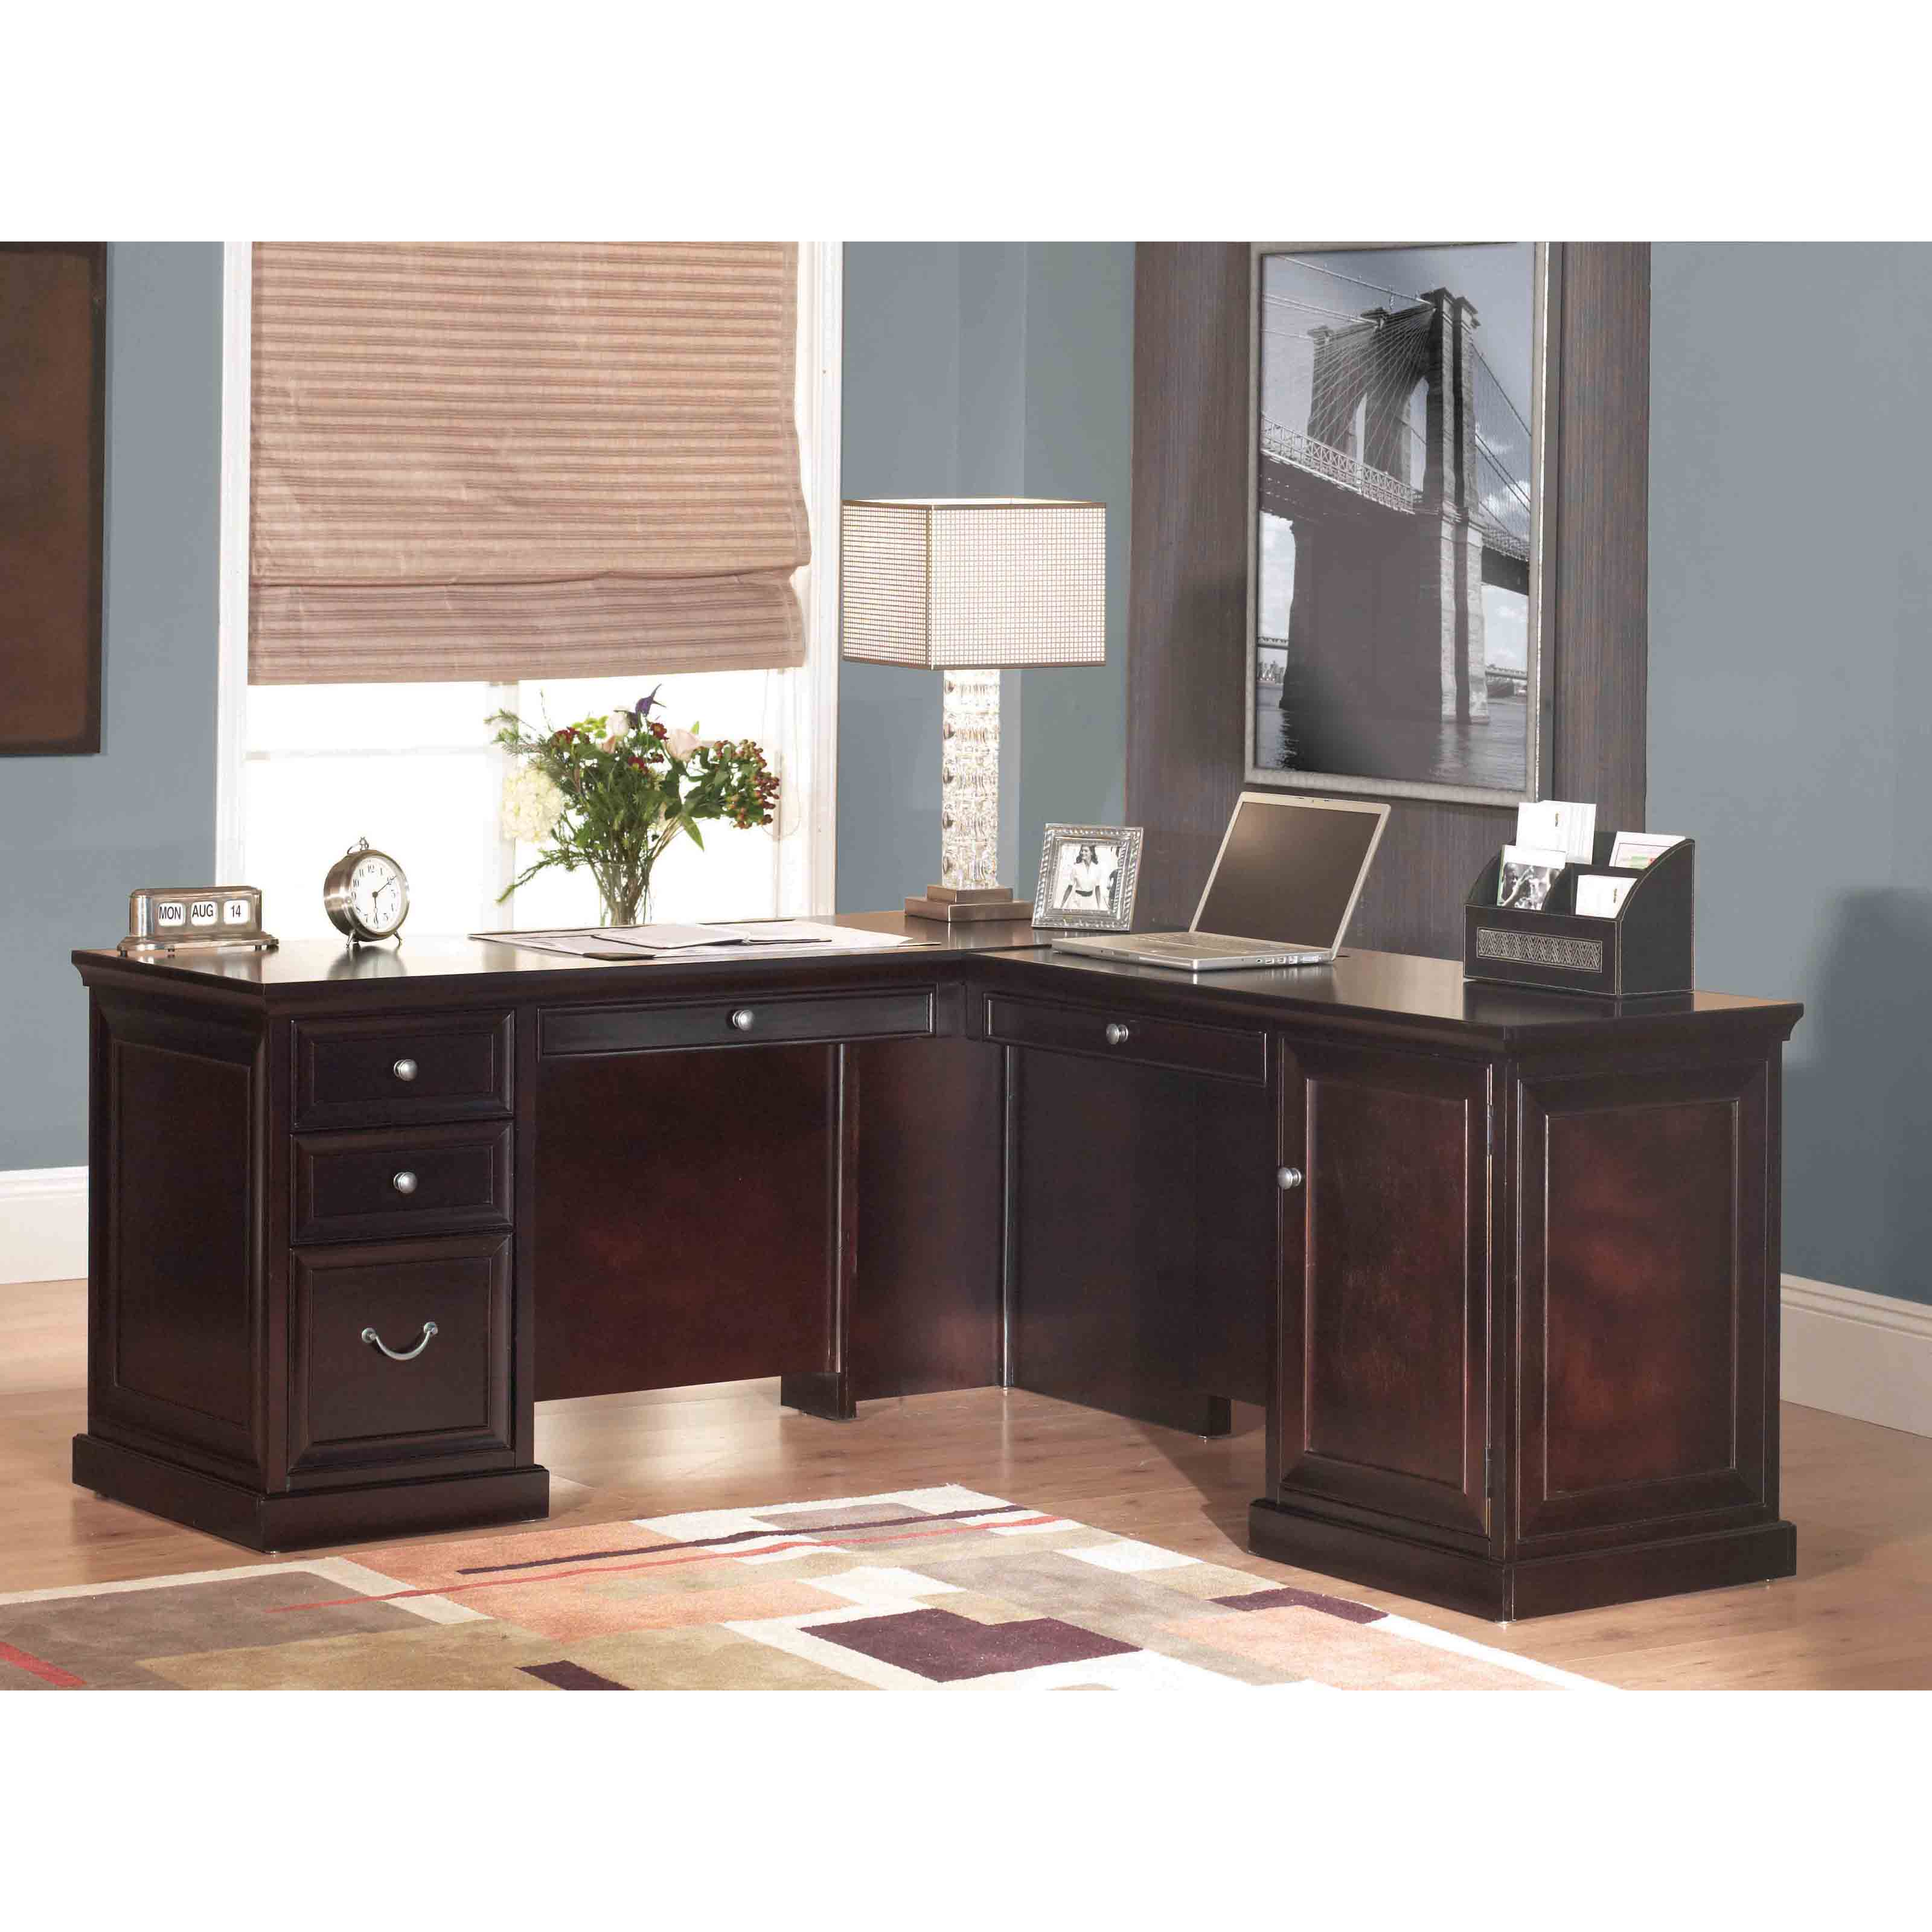 hutch desk amazon a storages office saving shaped furniture dp corner l and in available wooden home with multiple featuring desks space also com table